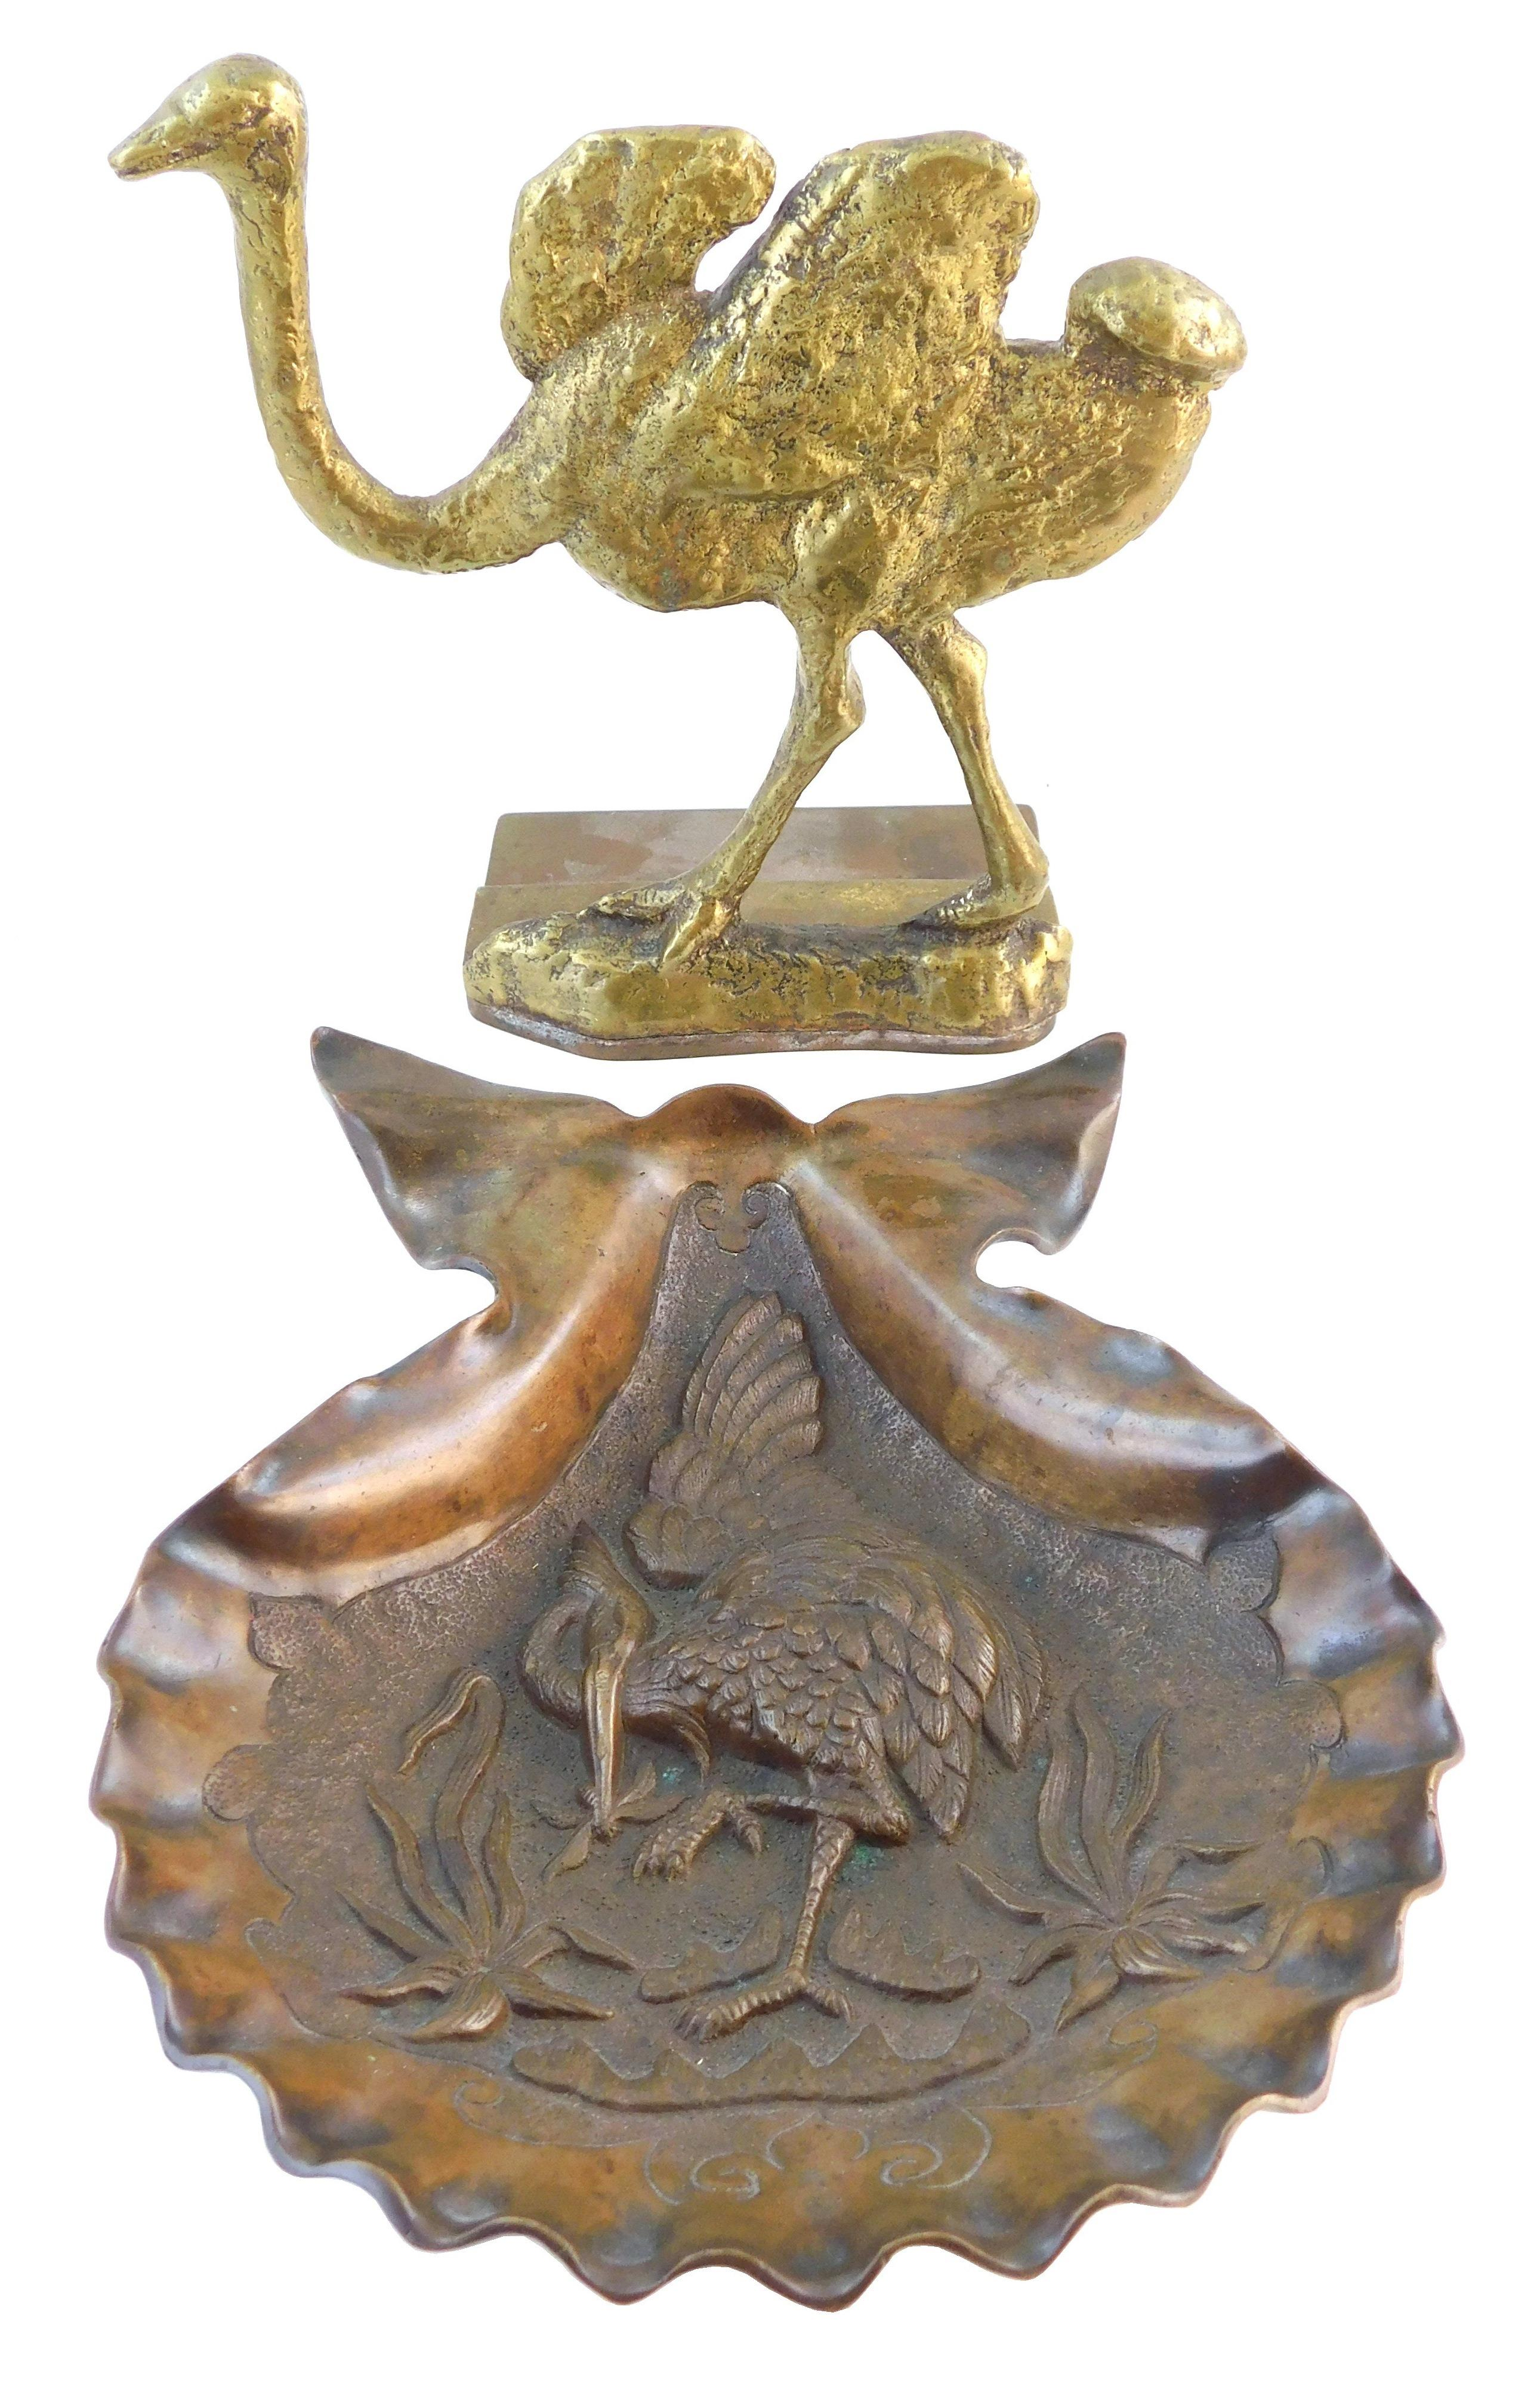 Large brass ostrich door stop and also a shell dish with heron in relief, non-magnetic, likely bronze or brass, both 19th/ early 20t...